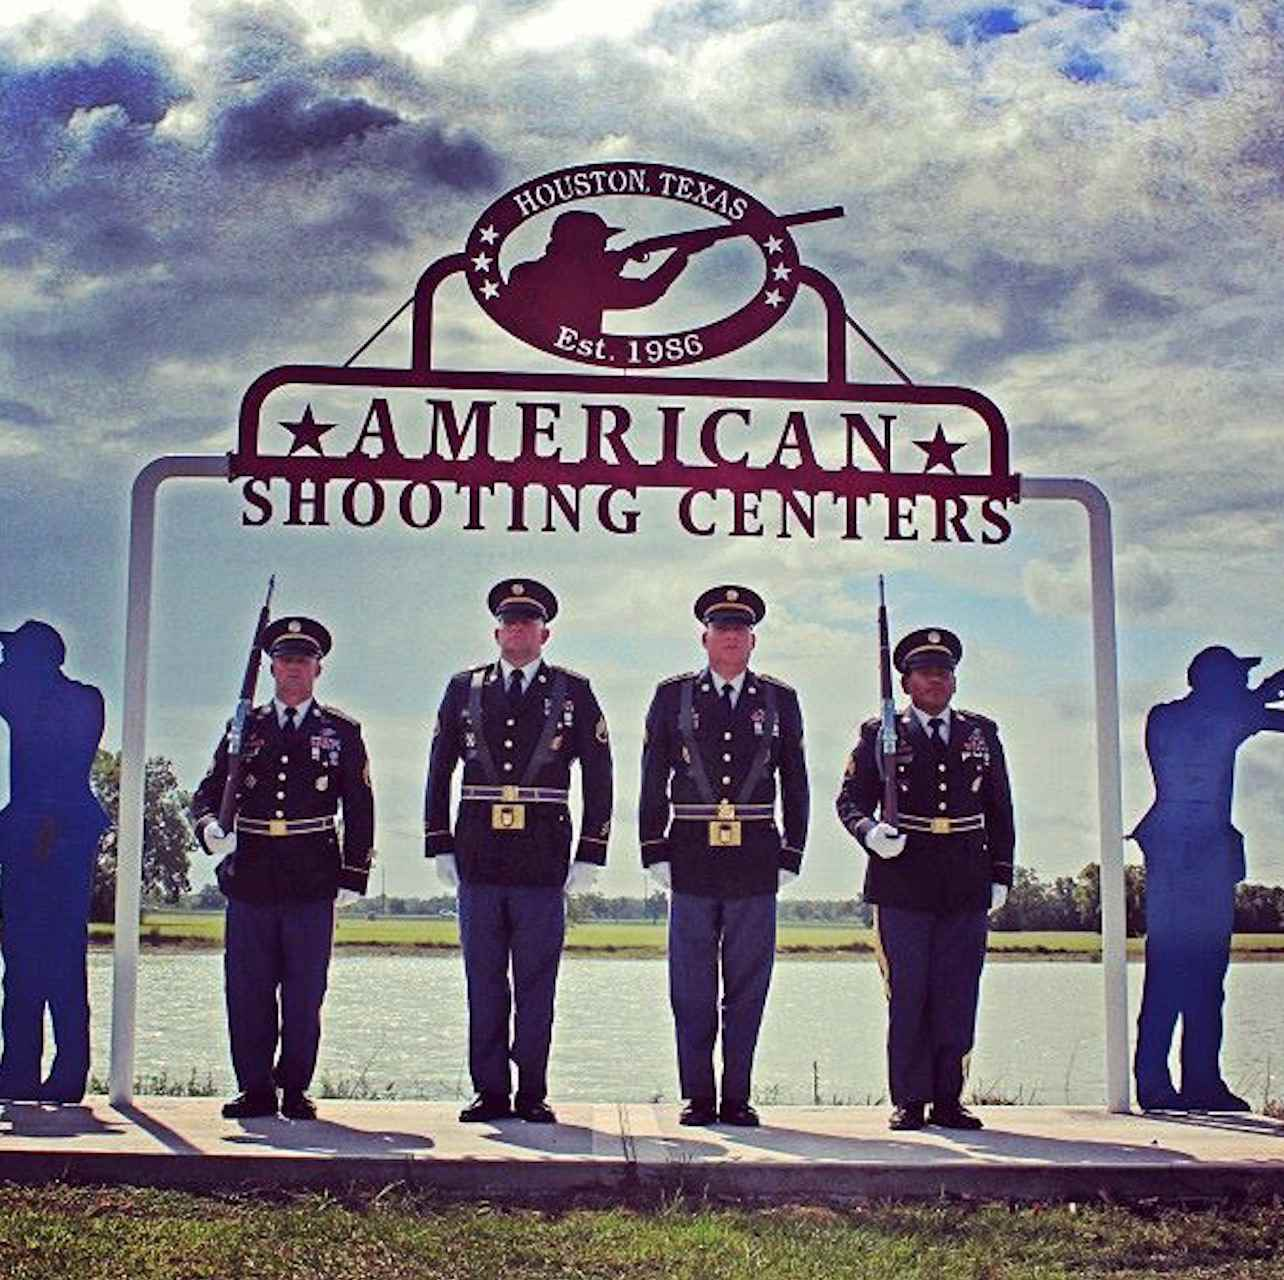 Visit the American Shooting Centers